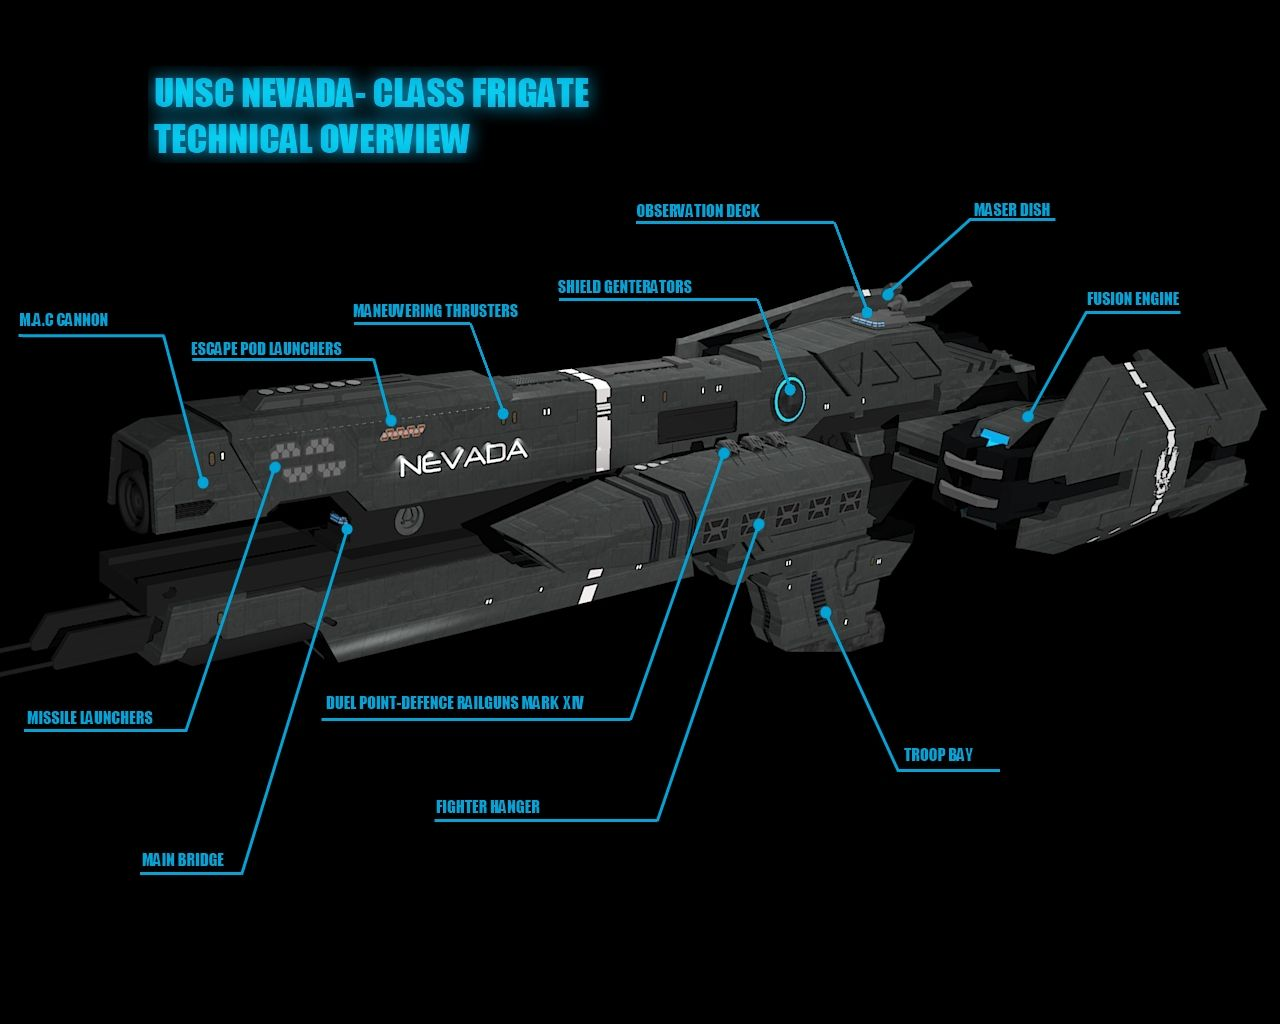 Halo Frigate Nevada- Technical Overview by calamitySi on DeviantArt